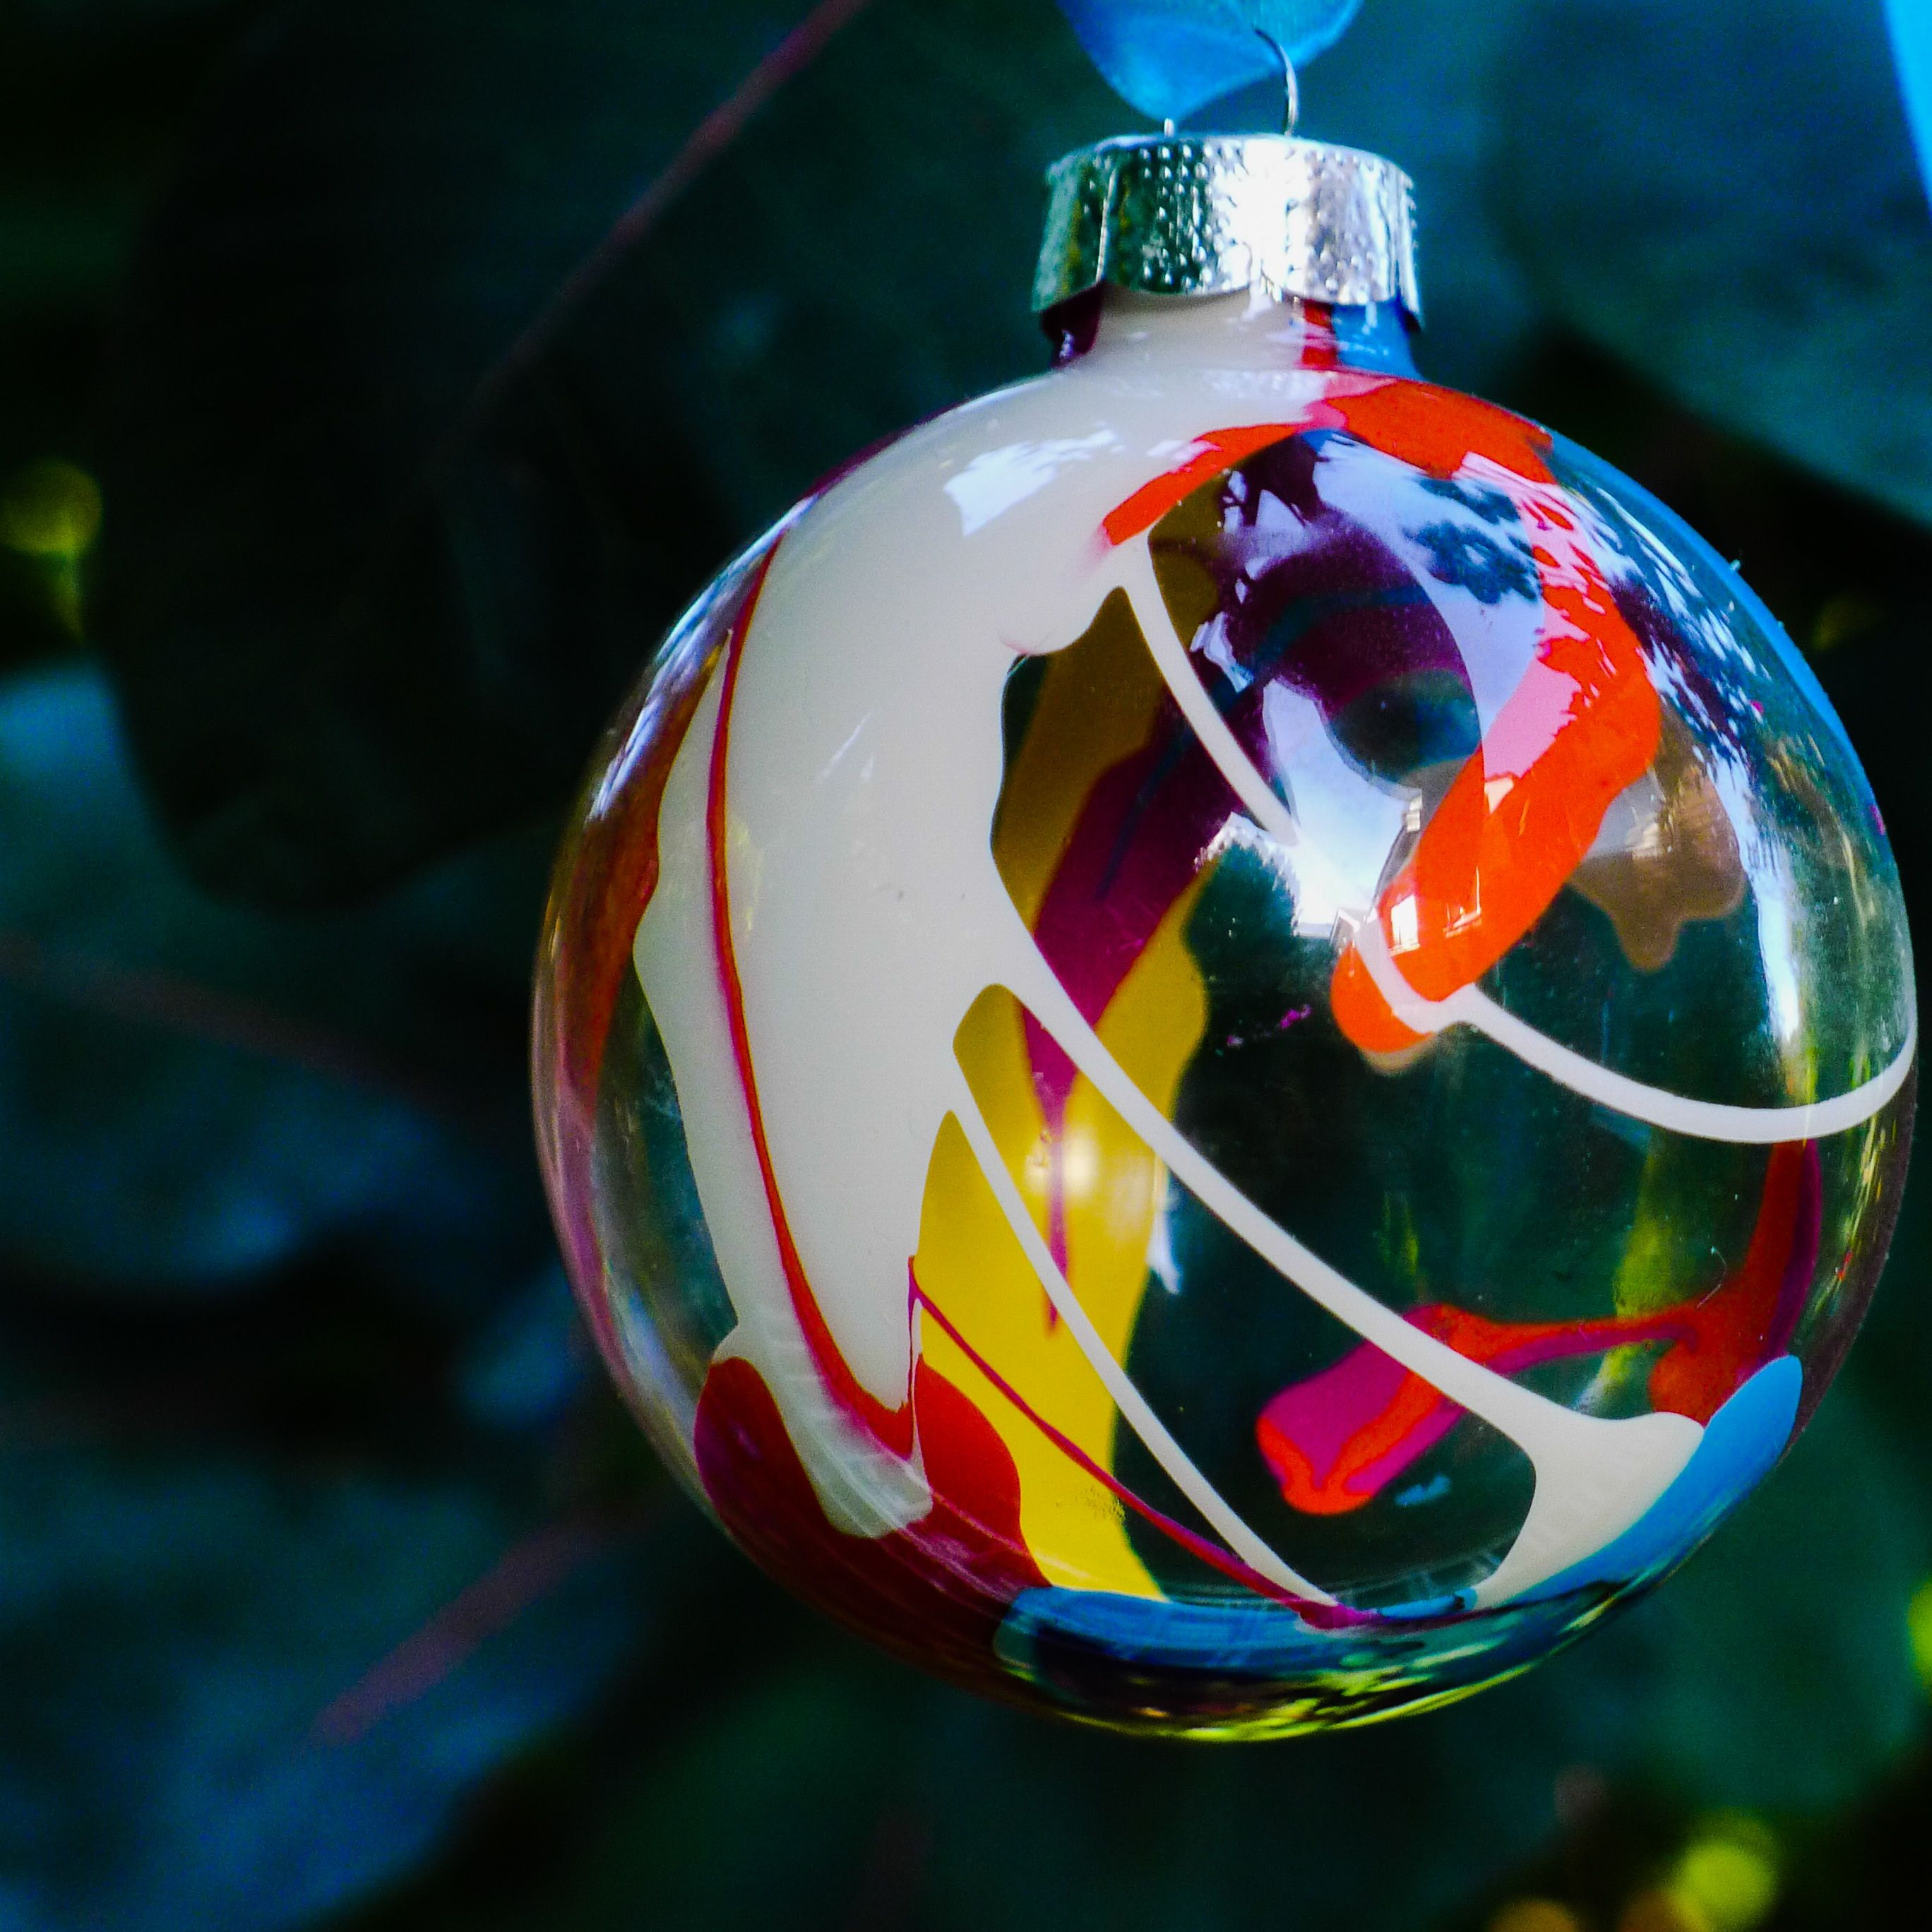 First Batch Of Clear Glass Ornaments Made By Dropping Acrylic Paint Inside Clear Glass Clear Glass Ornaments Christmas Projects For Kids How To Make Ornaments